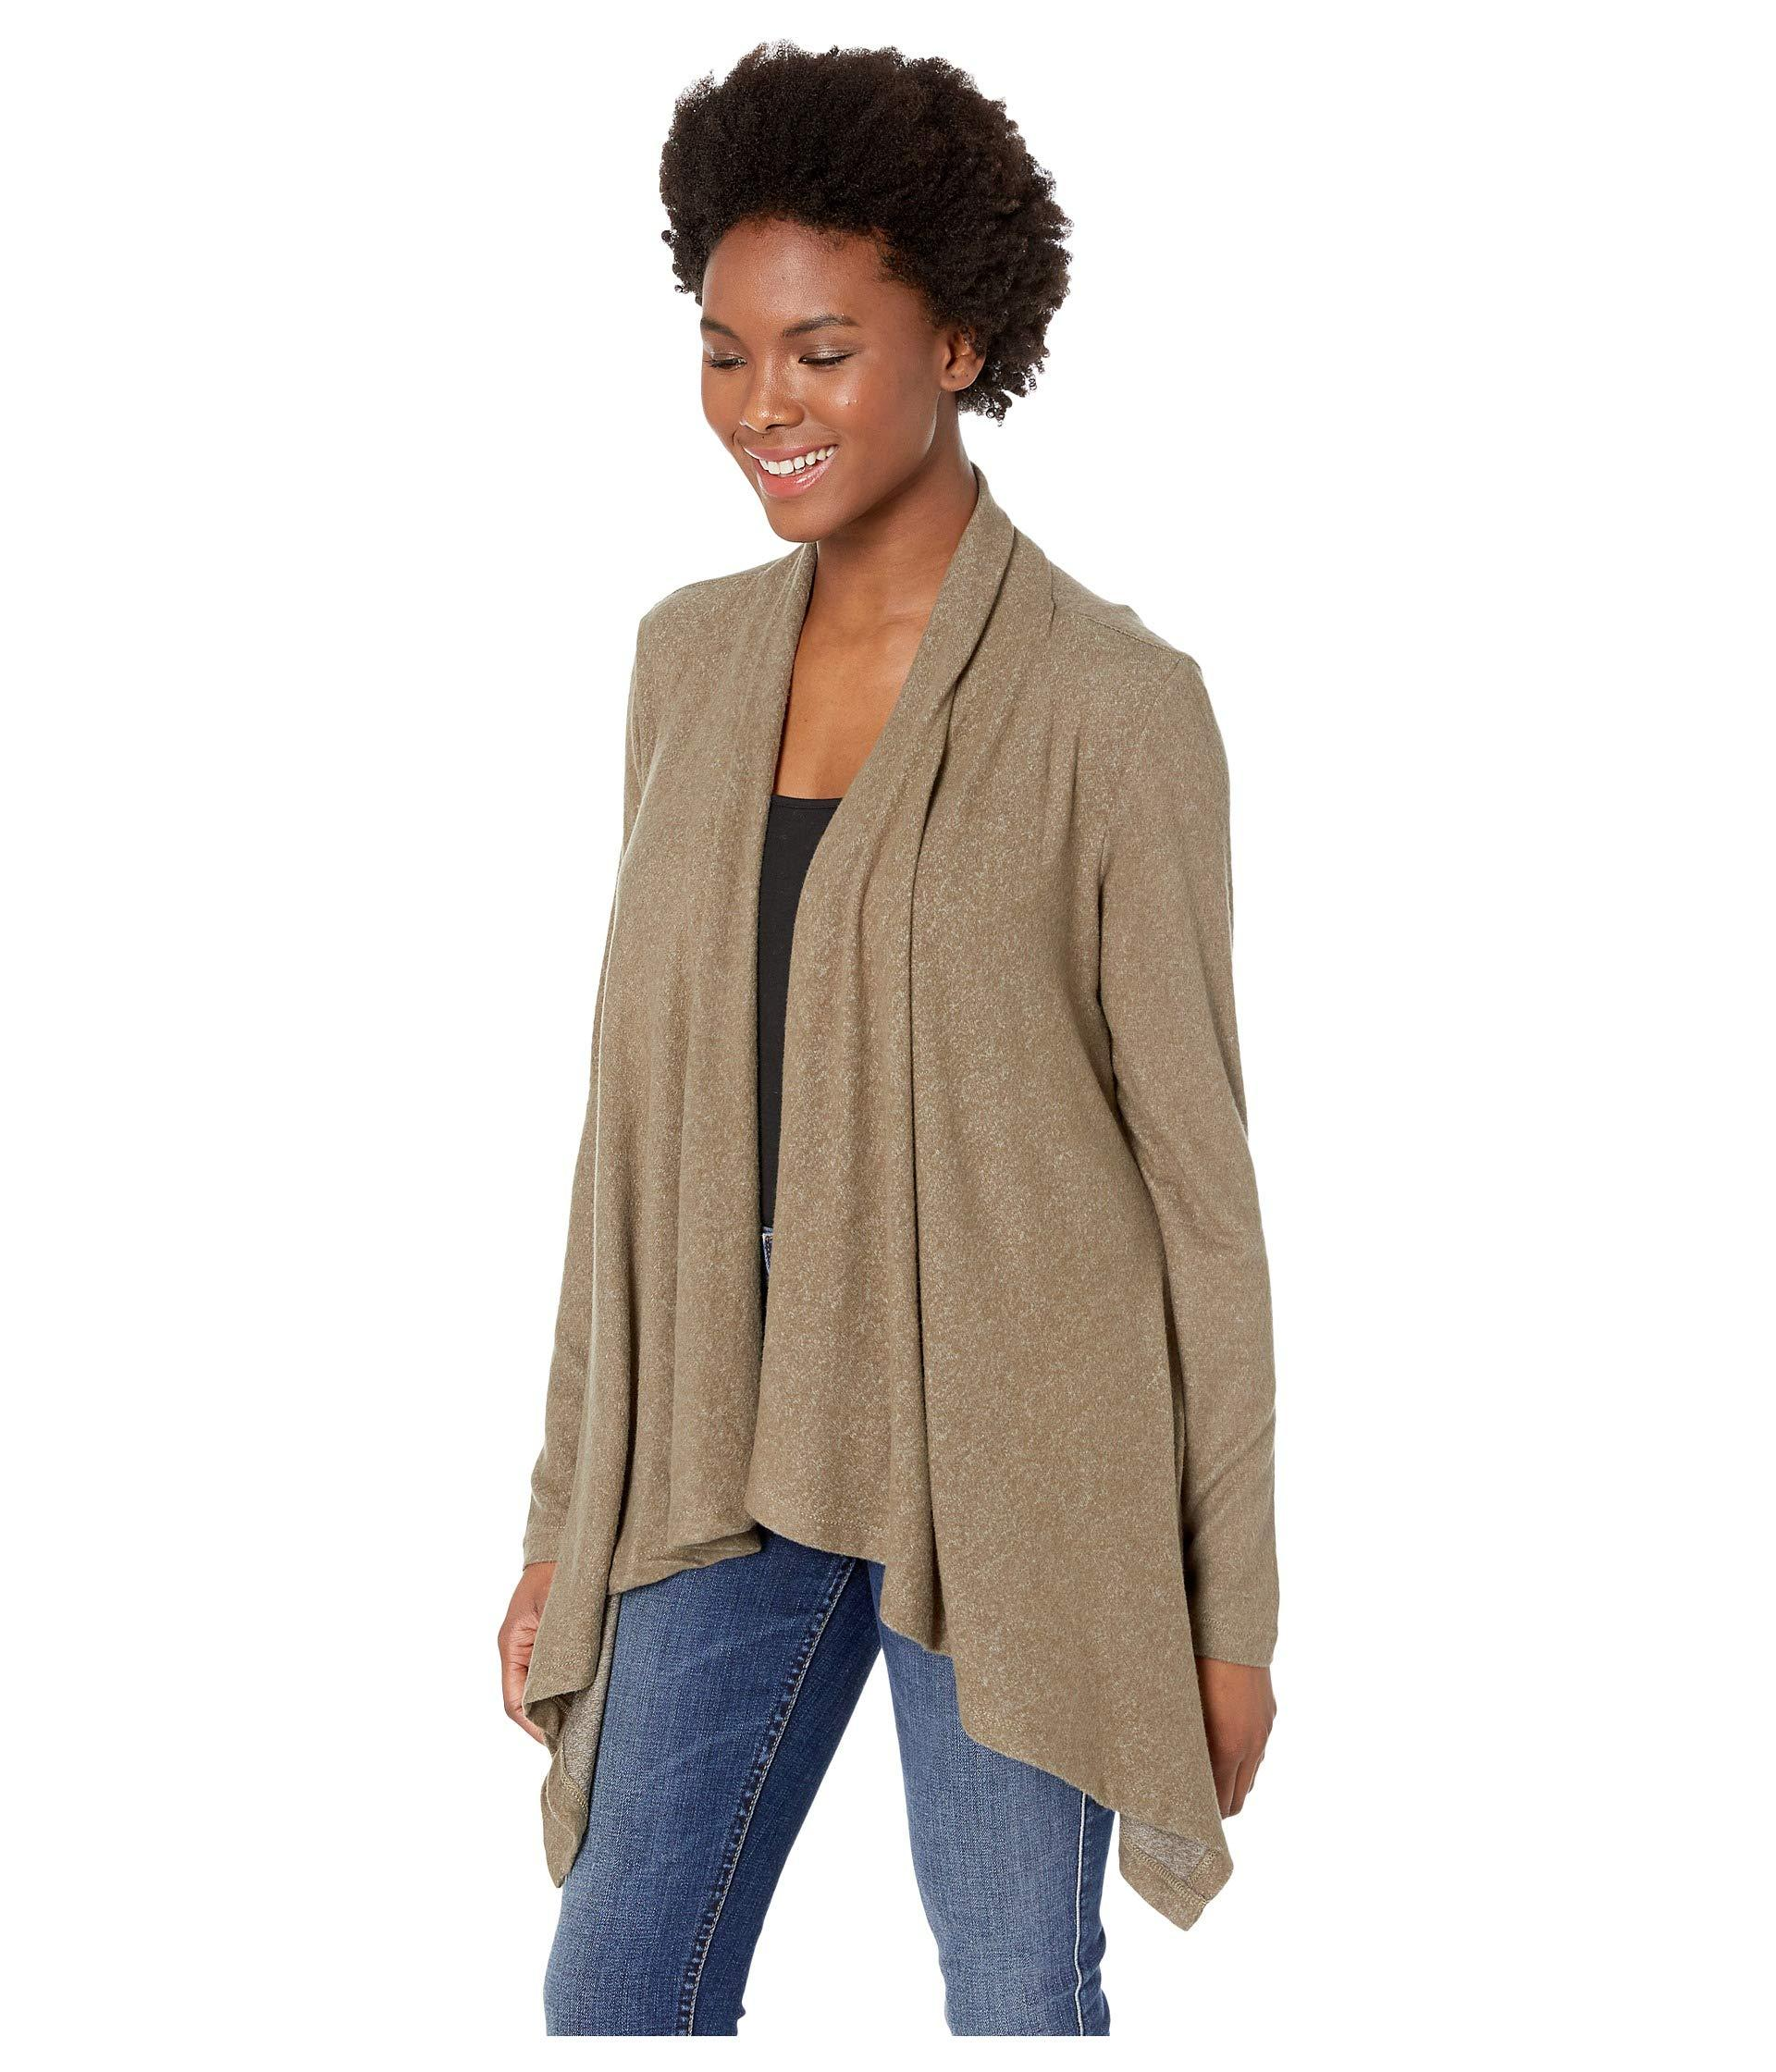 252b6dbe246948 Lyst - B Collection By Bobeau Amie Cardigan (lavender Violet) Women's  Sweater in Green